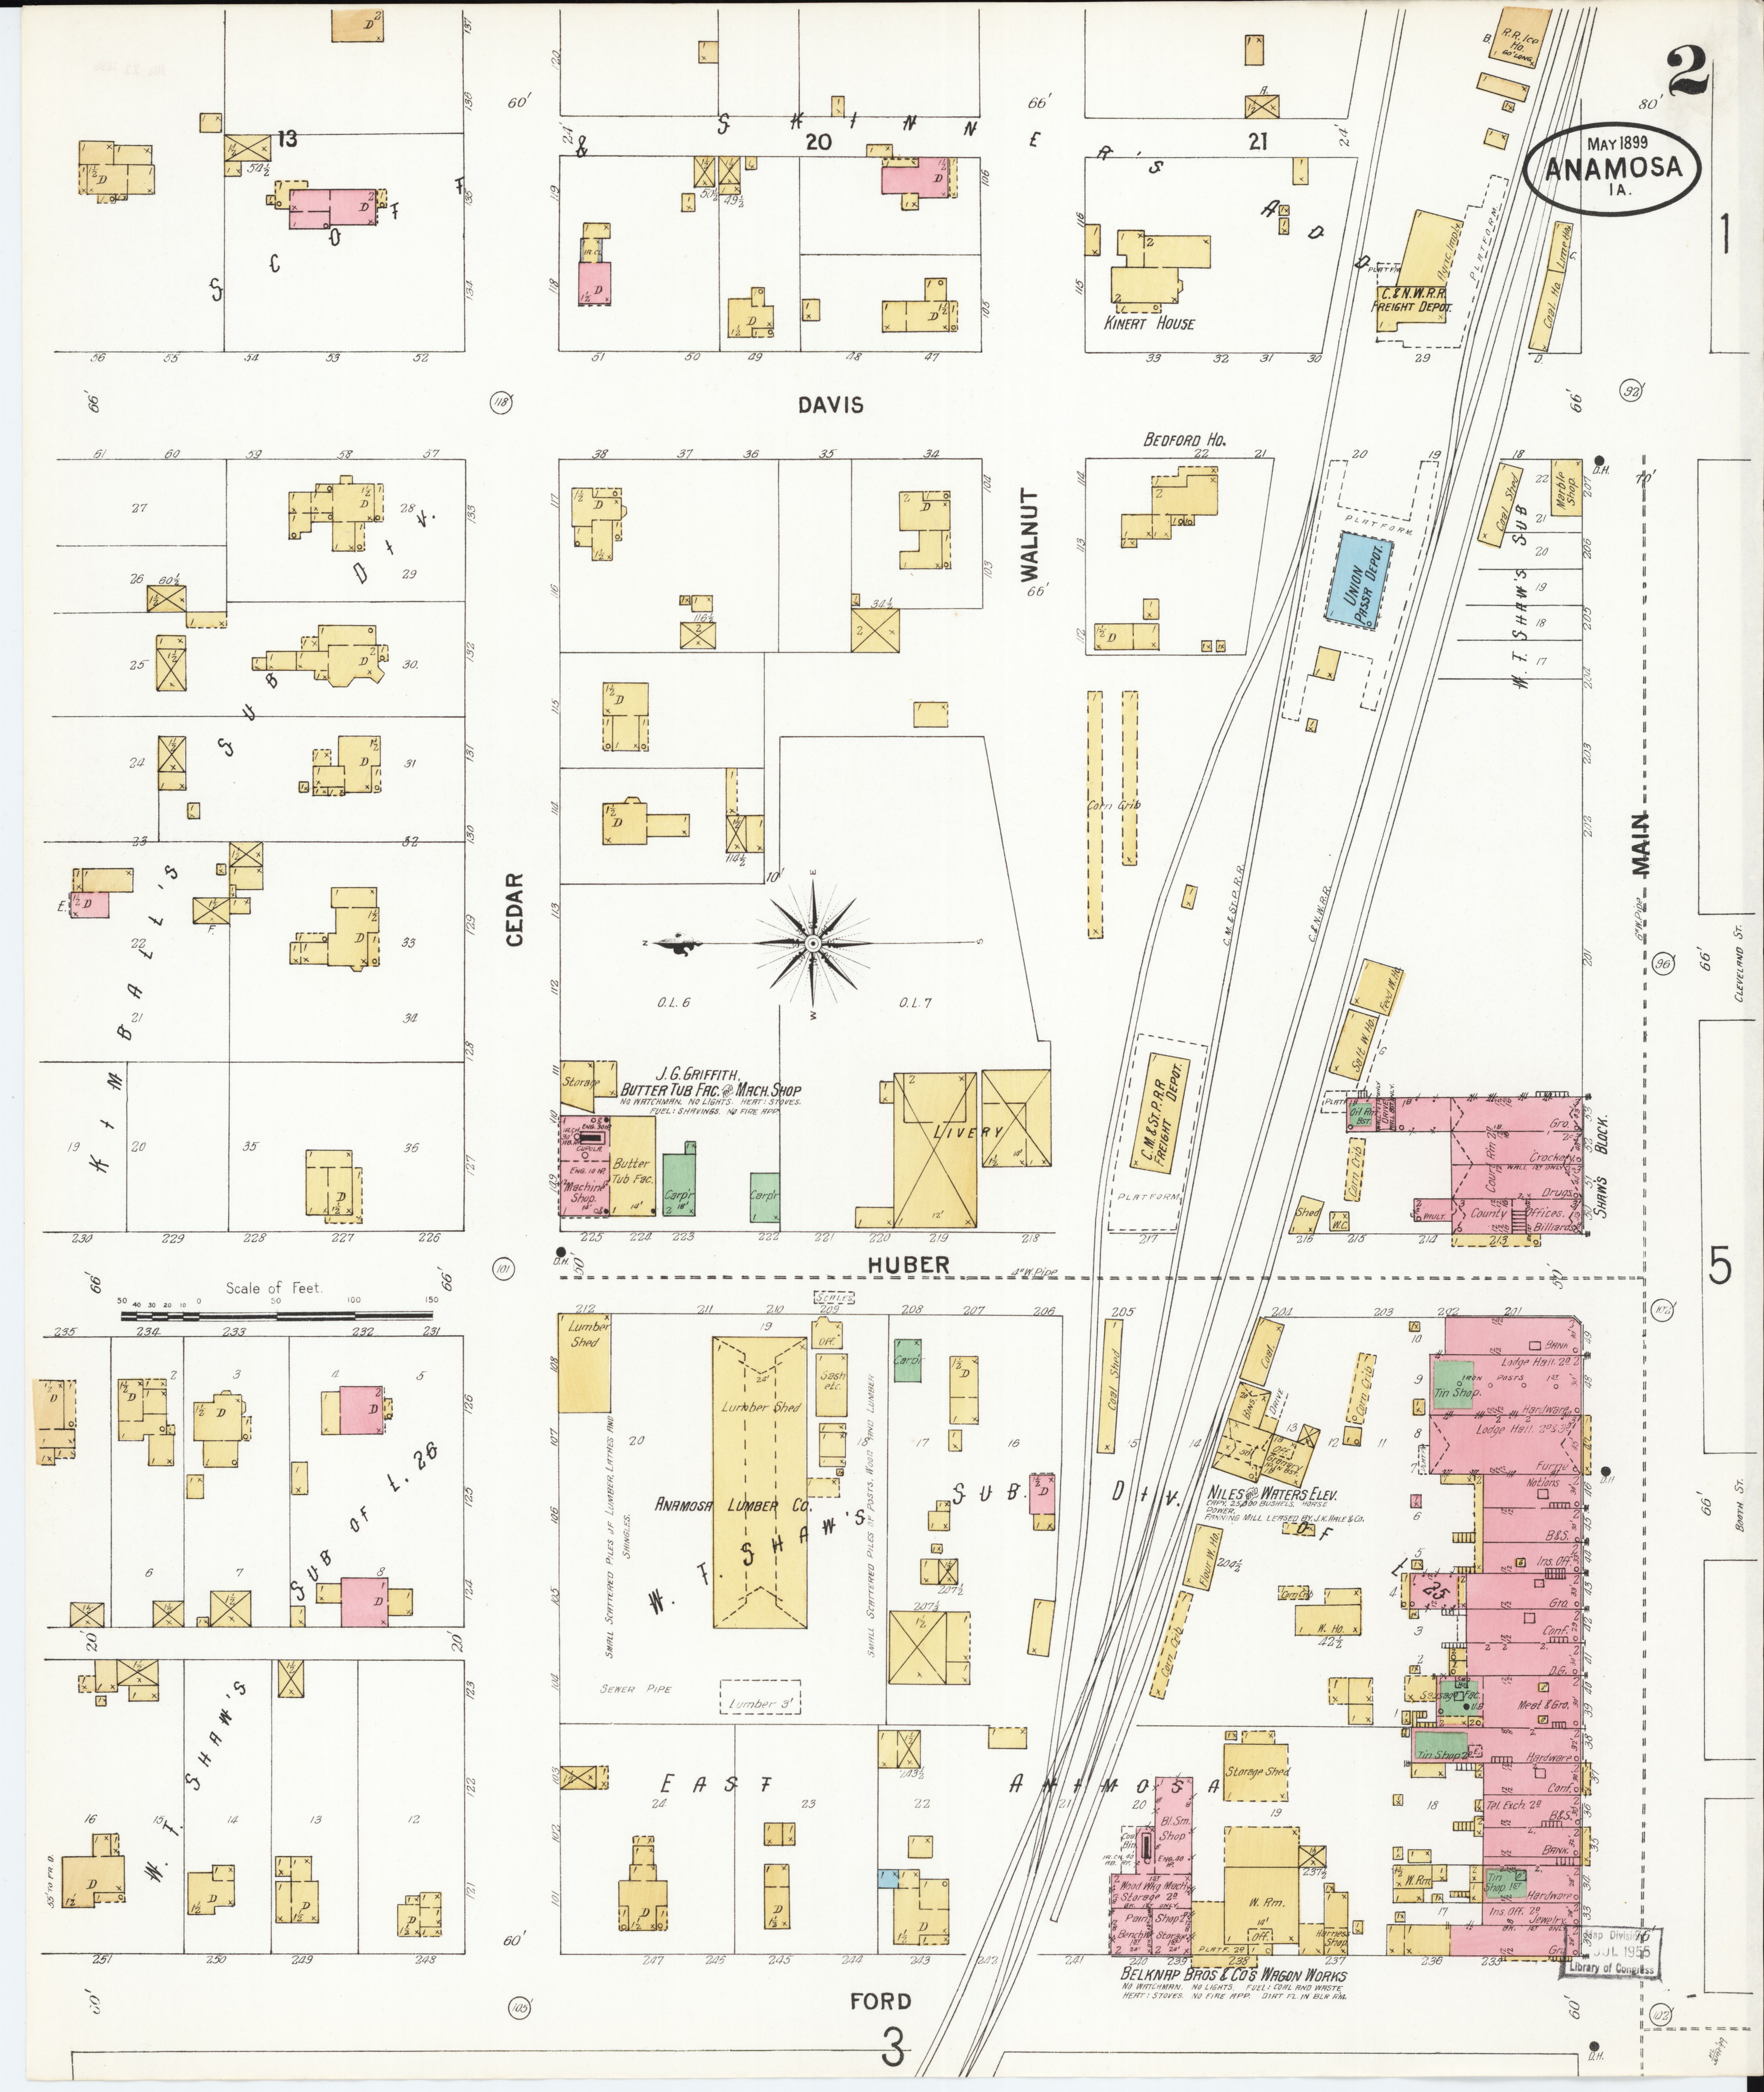 County Line 2 Fire Map.File Sanborn Fire Insurance Map From Anamosa Jones County Iowa